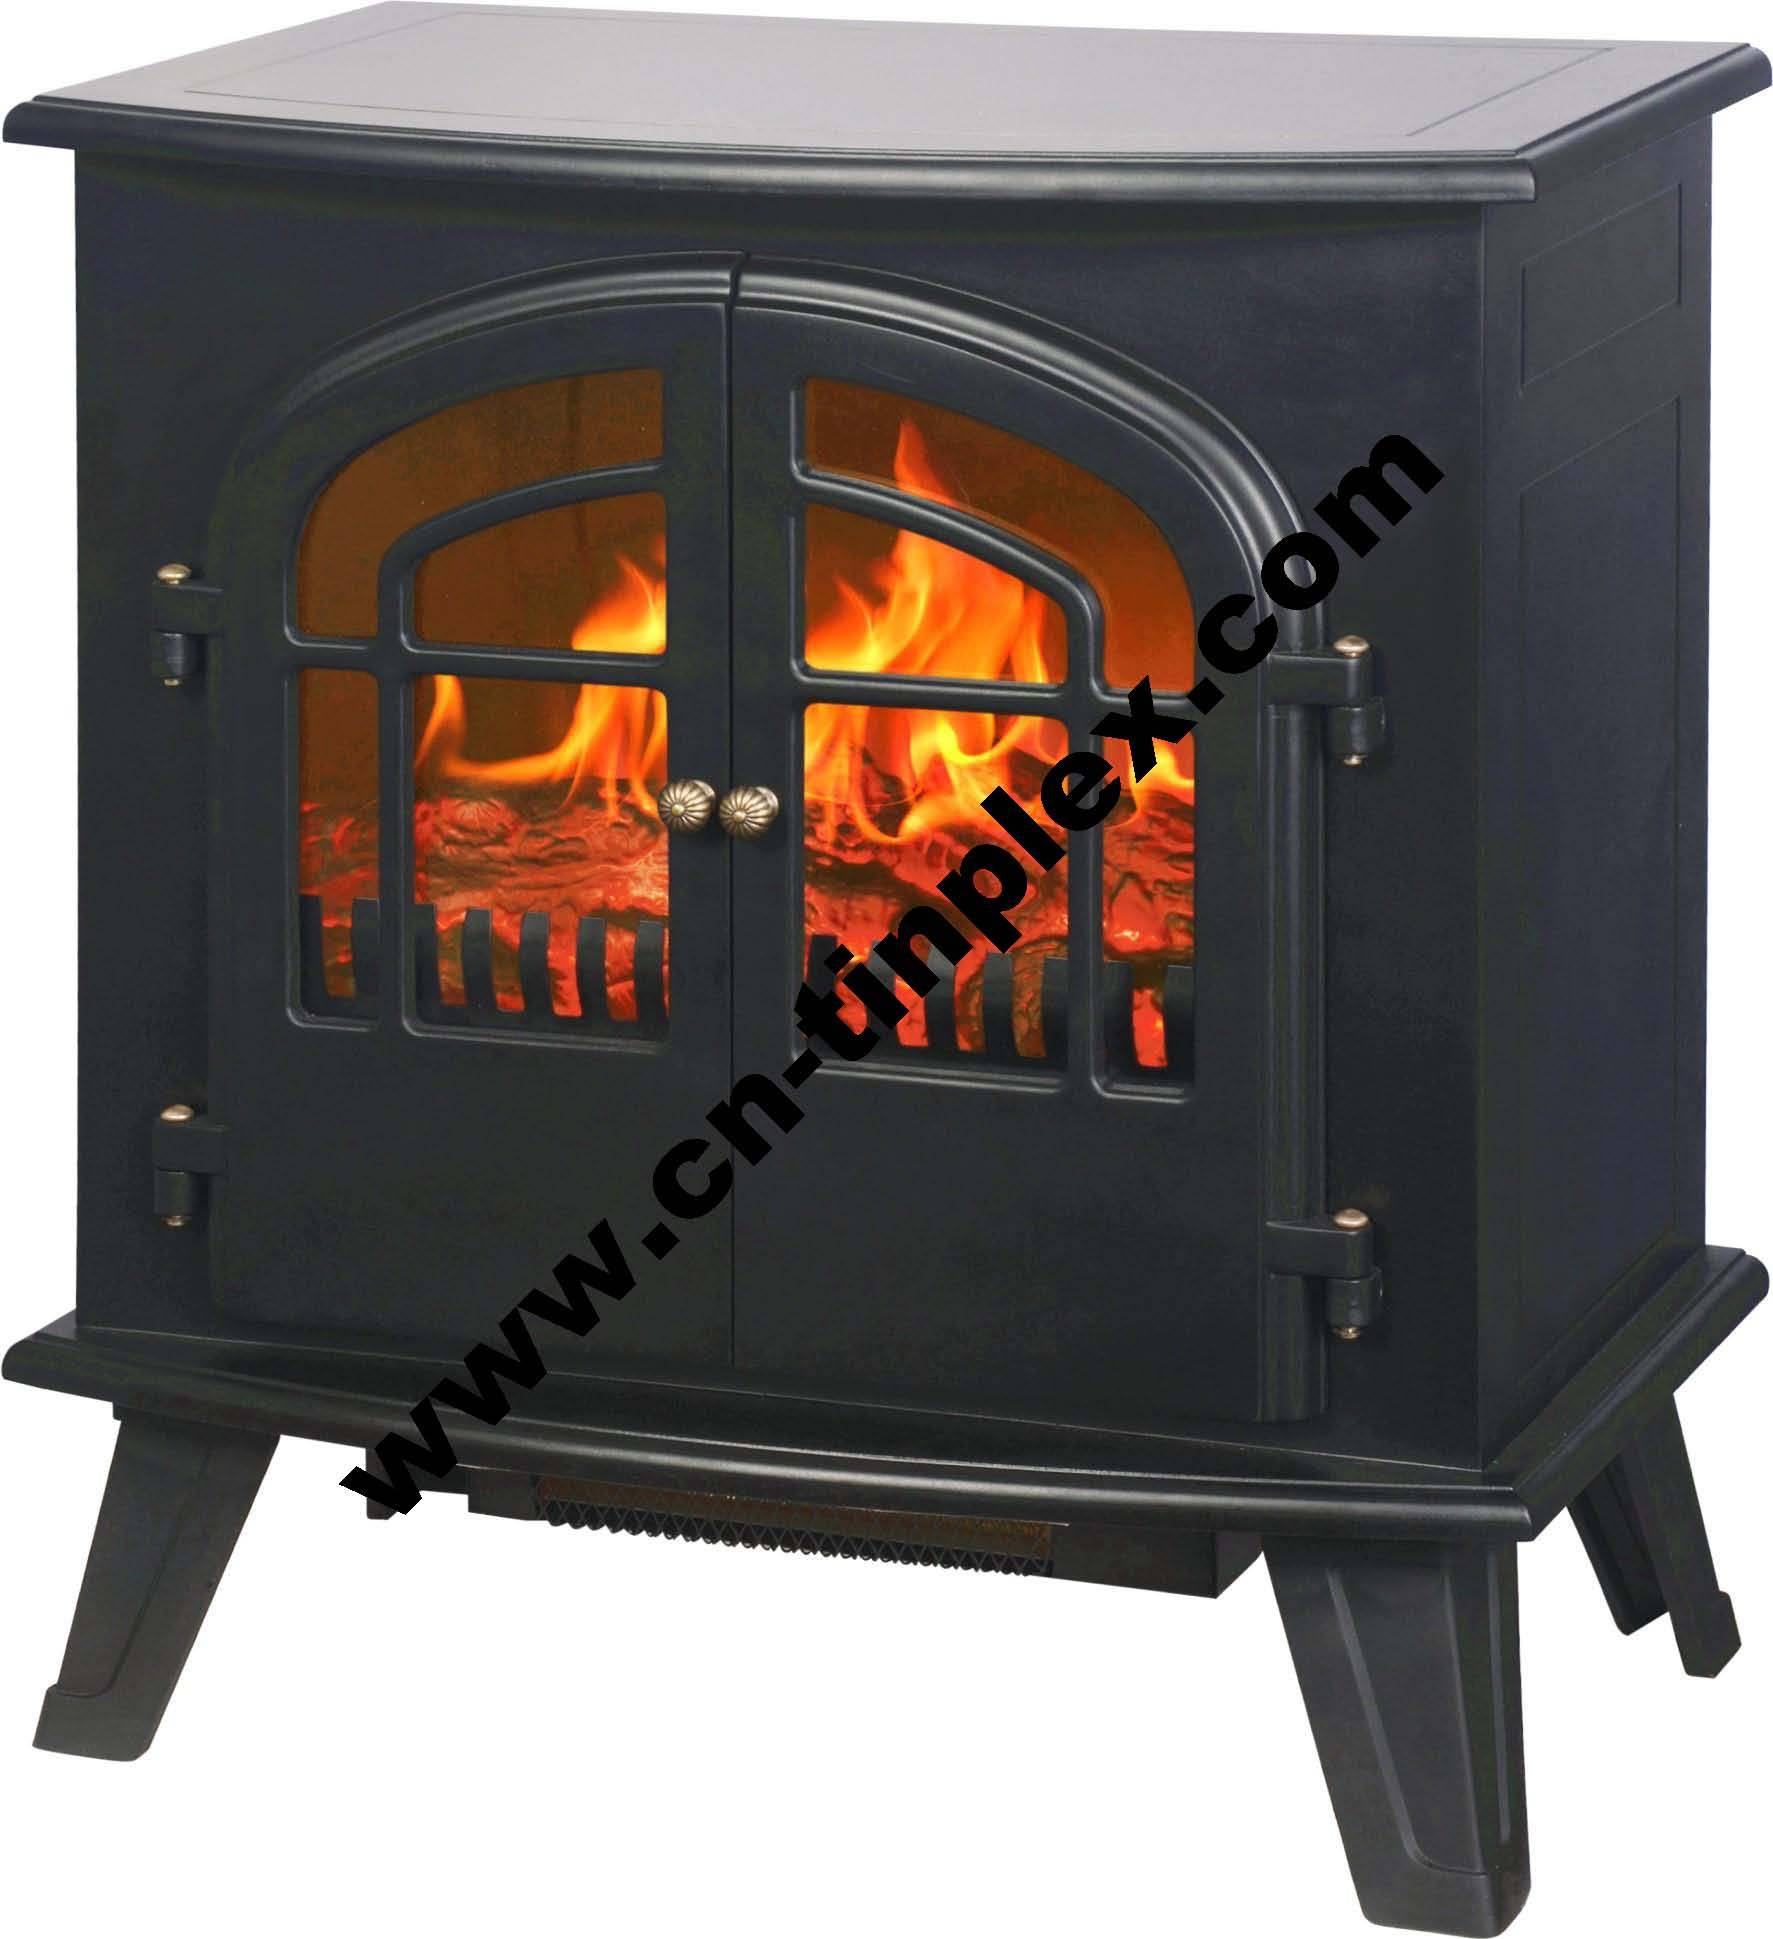 hot sale double sided fireplace,two sided electric fireplace,stoves,fireplace,,corner fireplace